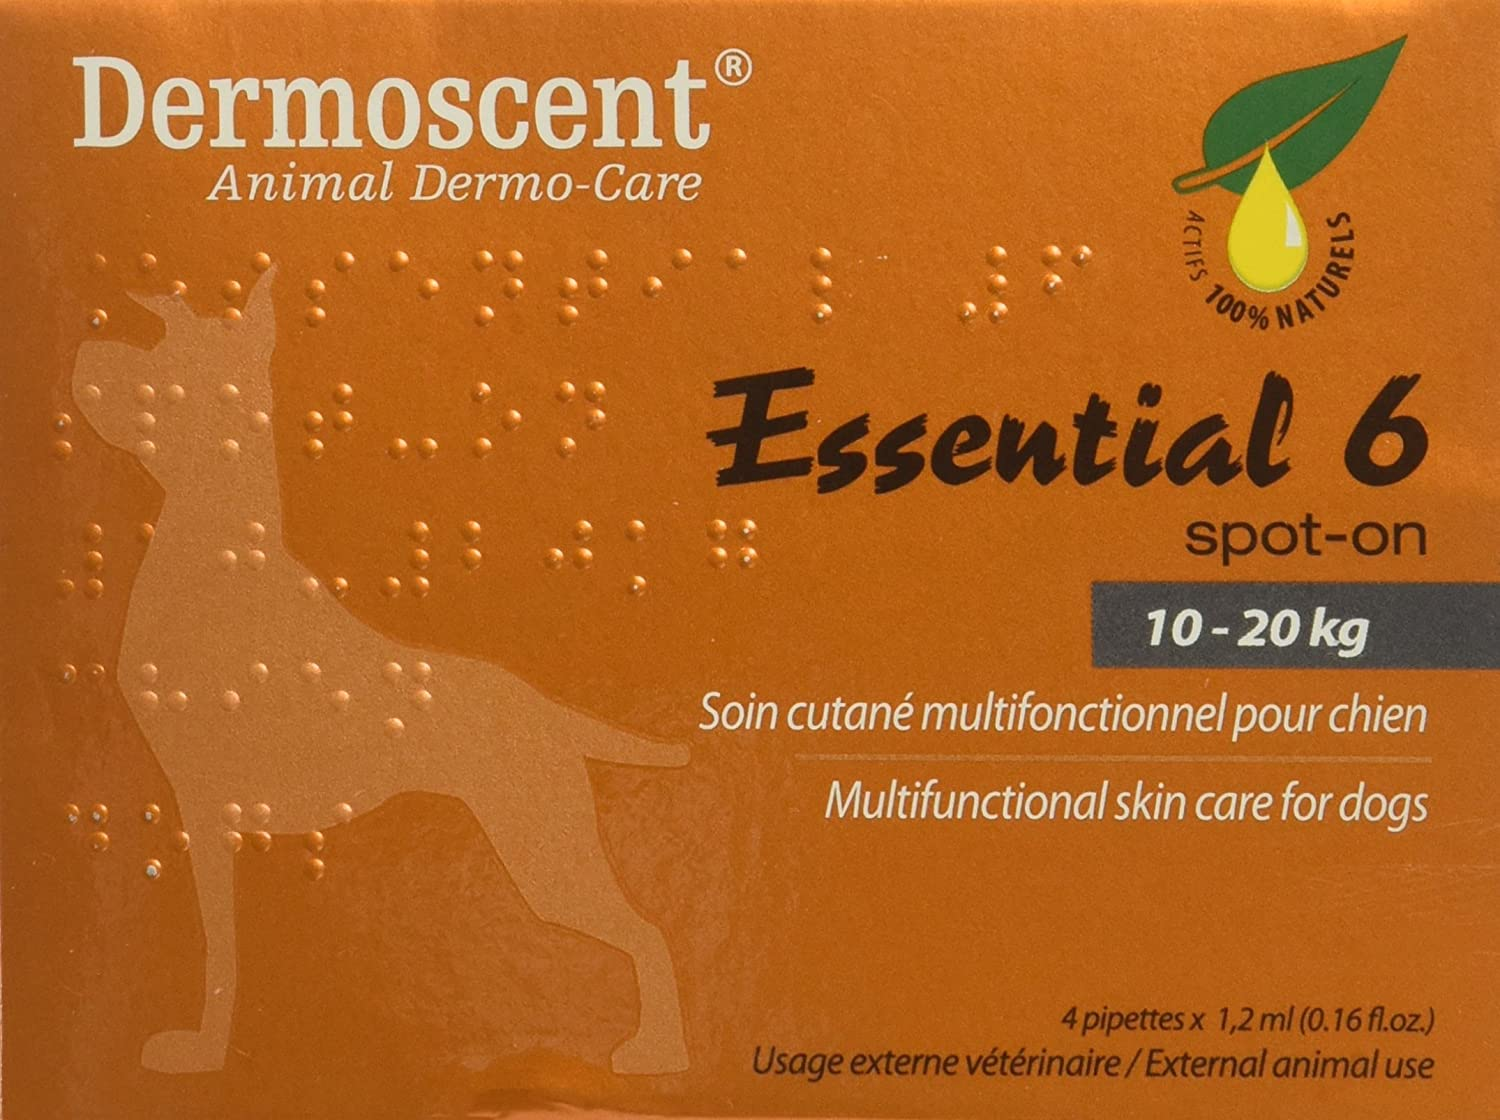 Dermoscent Essential 6 Spot On Skin Care For Medium Dogs 22 45 Lbs, 4 Tubes (10 20kg) by Dermoscent